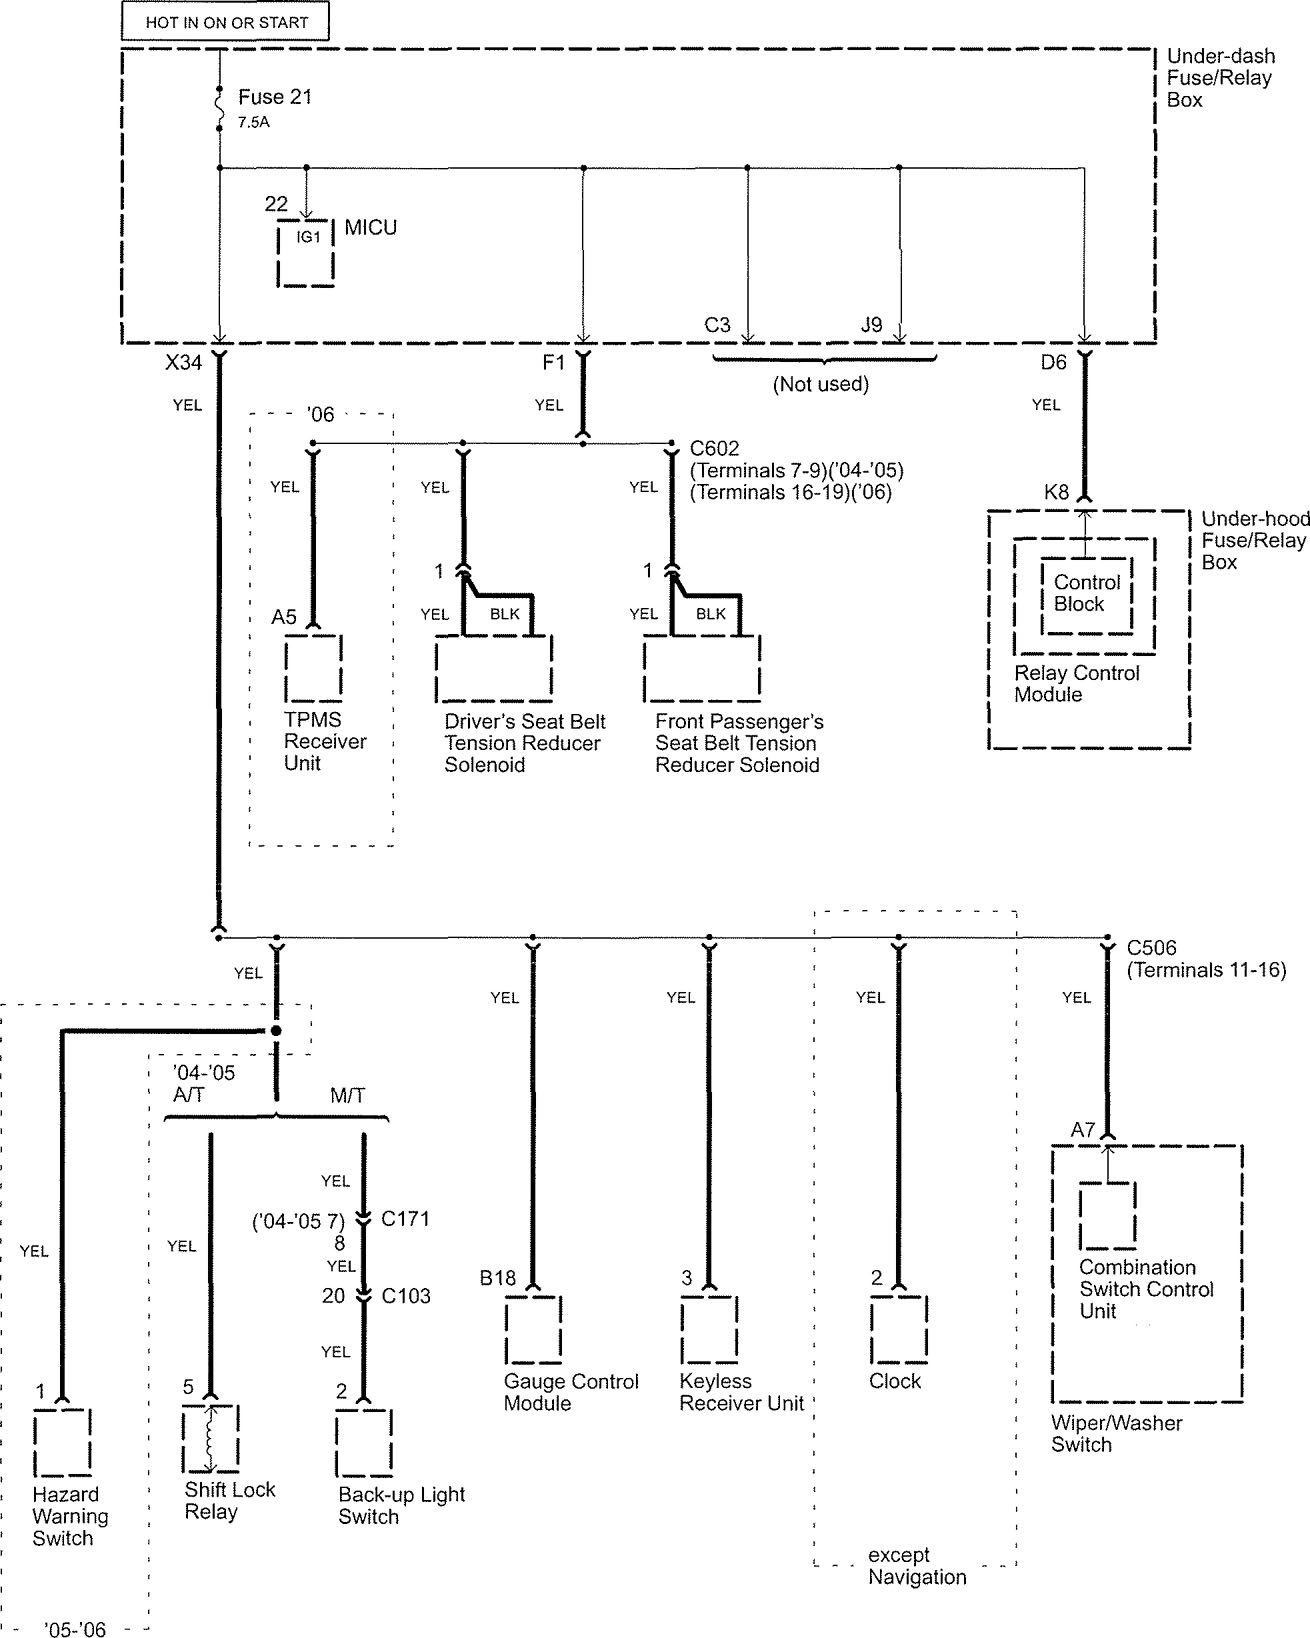 Acura TL (2005) - wiring diagrams - power distribution - Carknowledge.infoCarknowledge.info